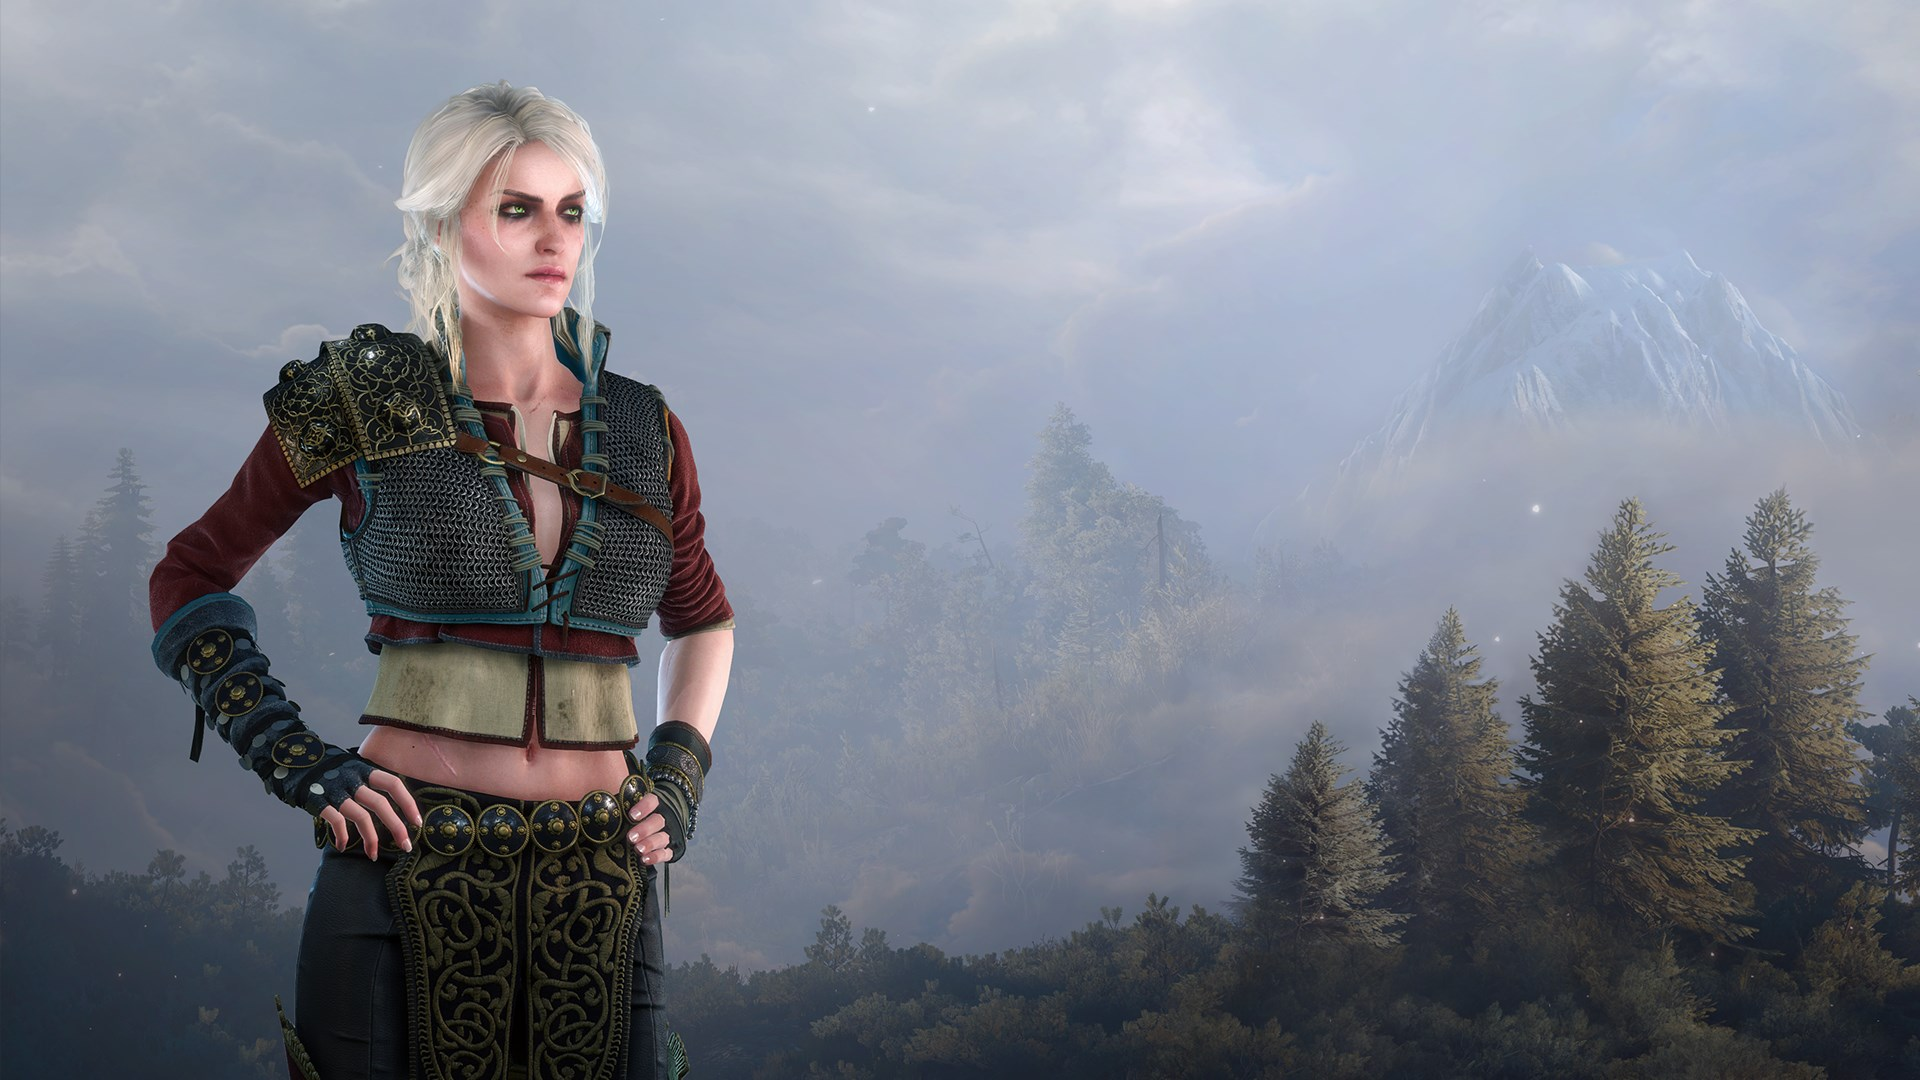 Alternative Look for Ciri